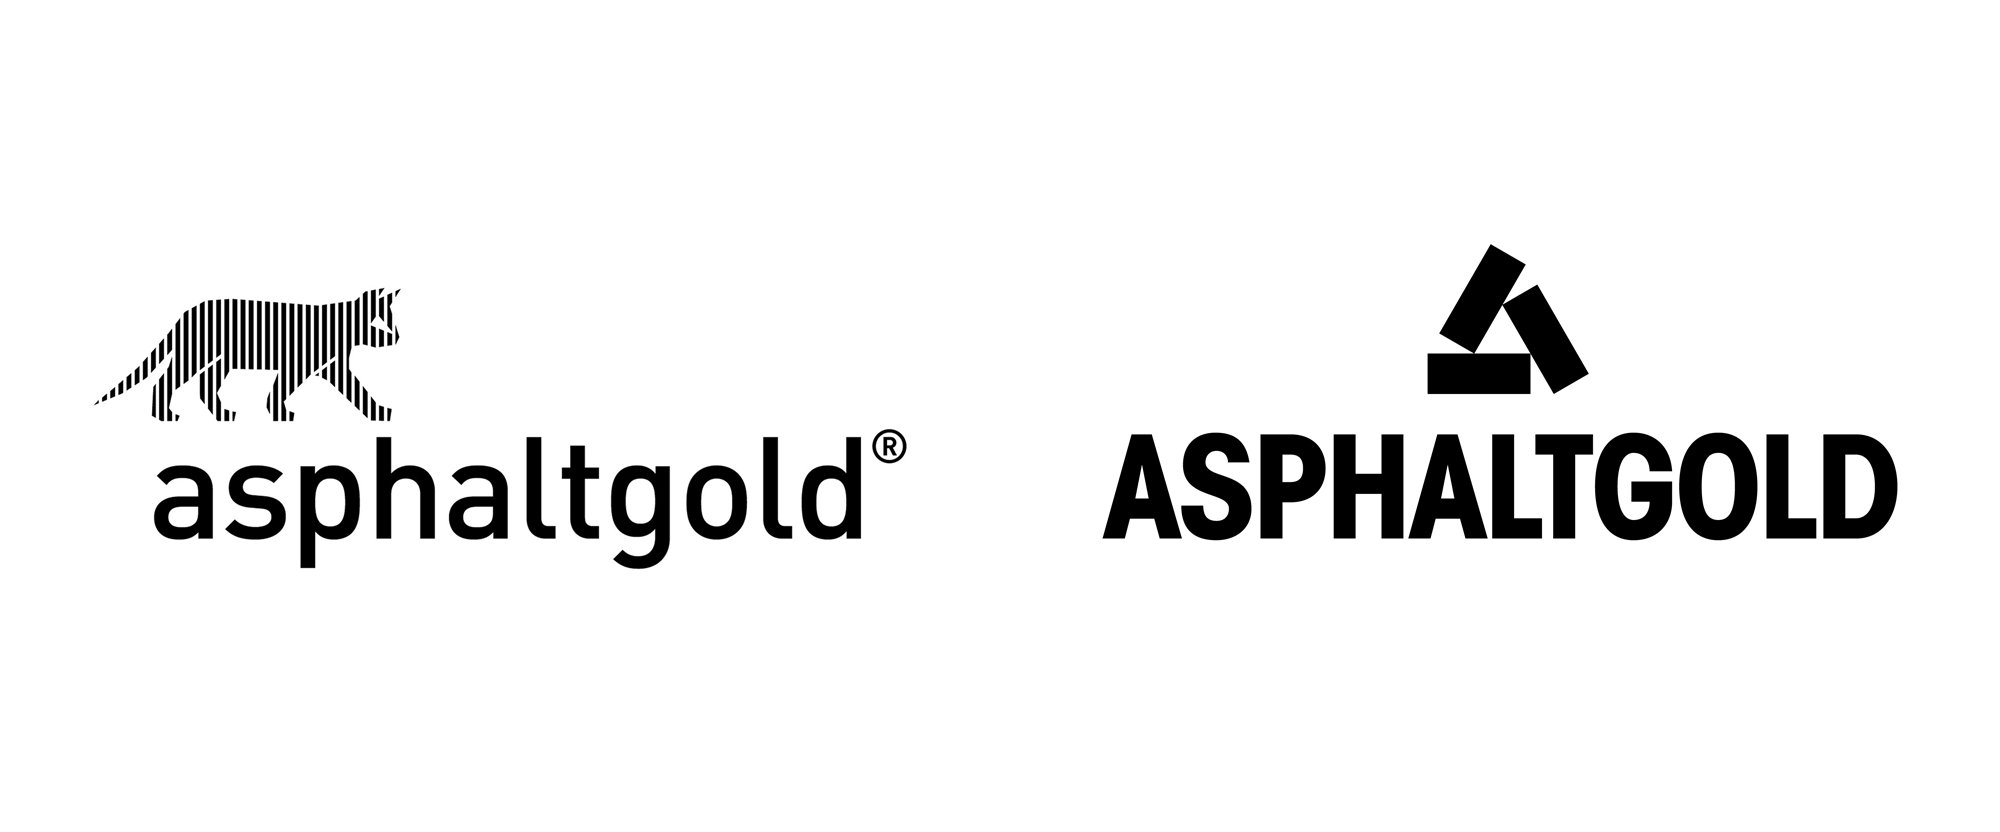 New Logo and Identity for Asphaltgold by Arndt Benedikt